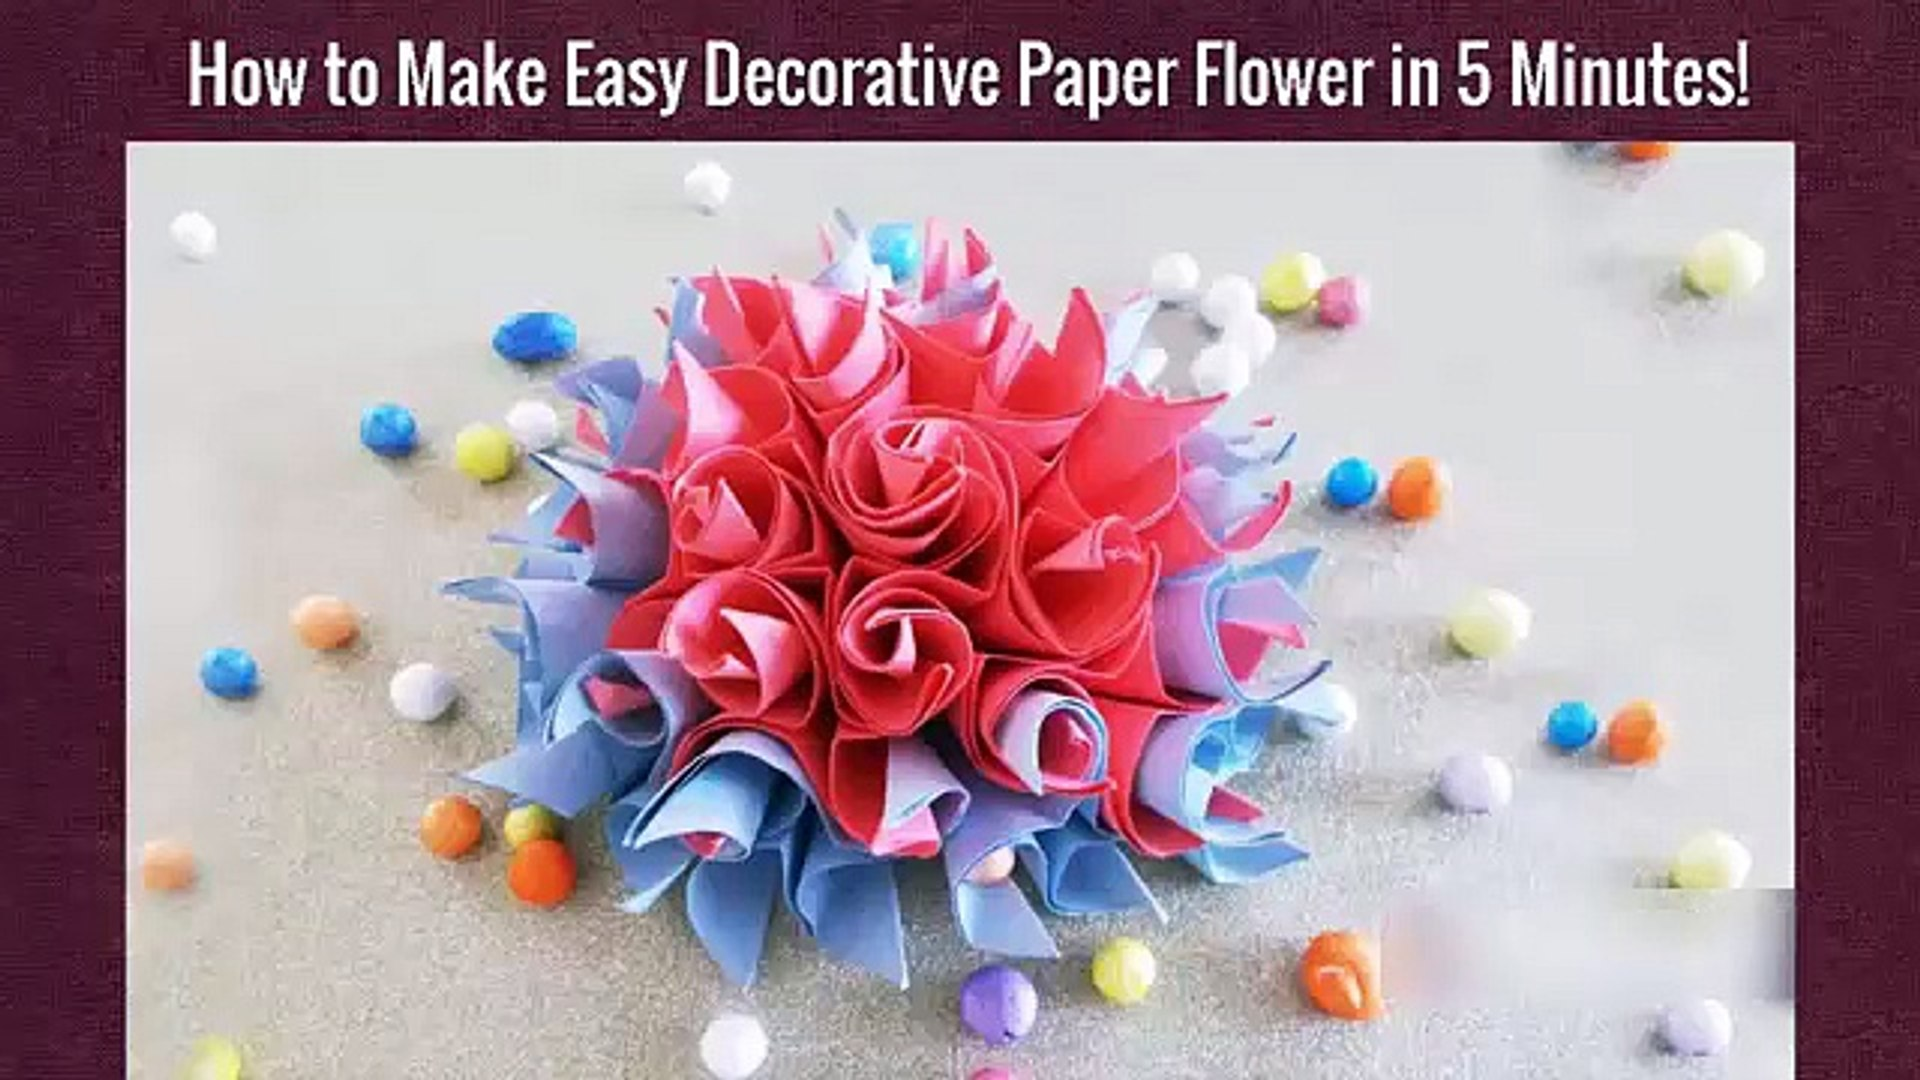 Folding Paper Flowers (8 Petals) | Kids' Crafts | Fun Craft Ideas ... | 1080x1920